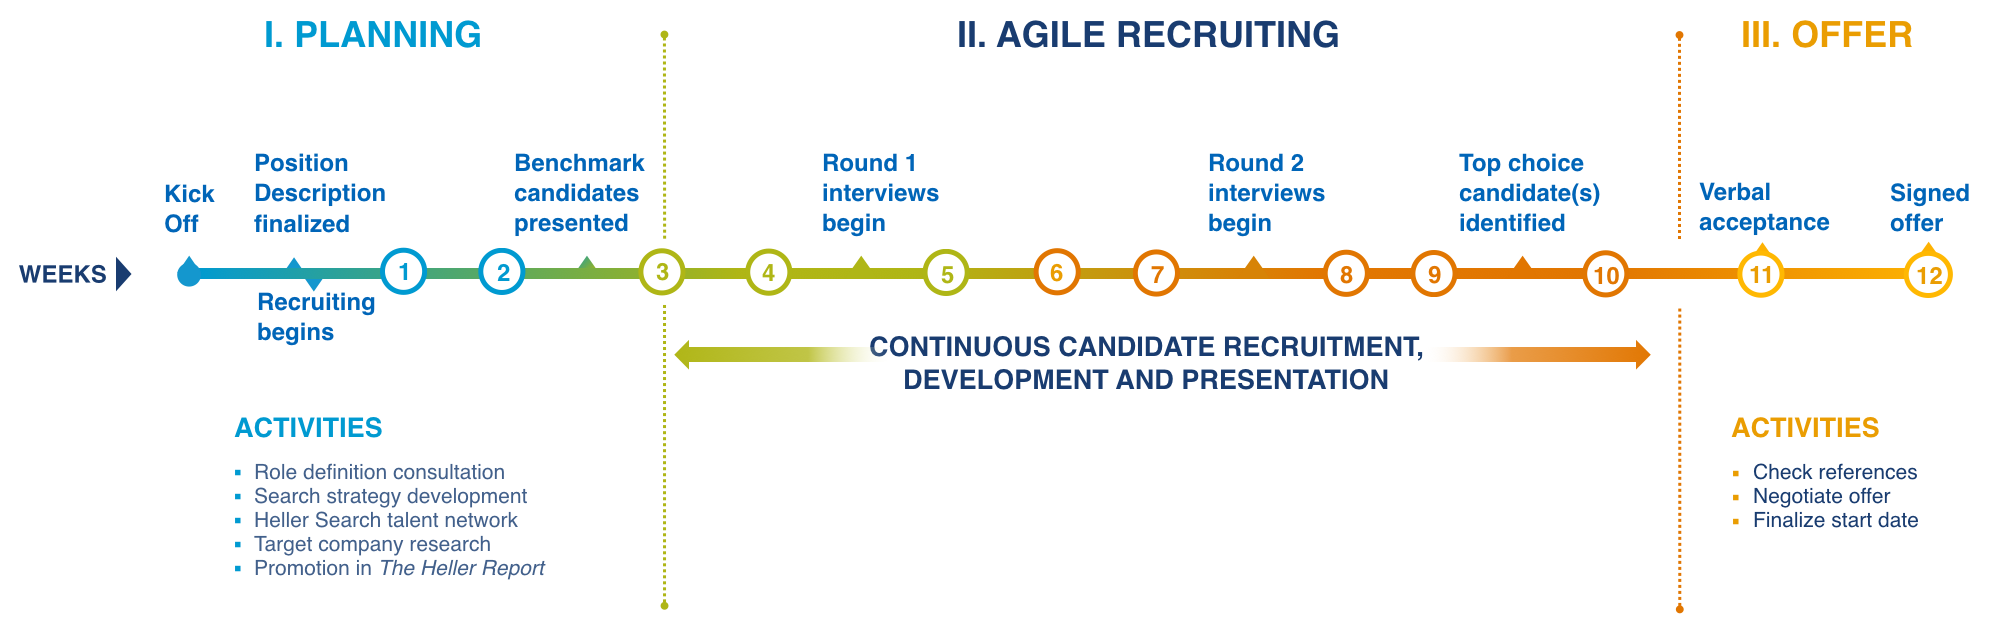 IT recruiting process